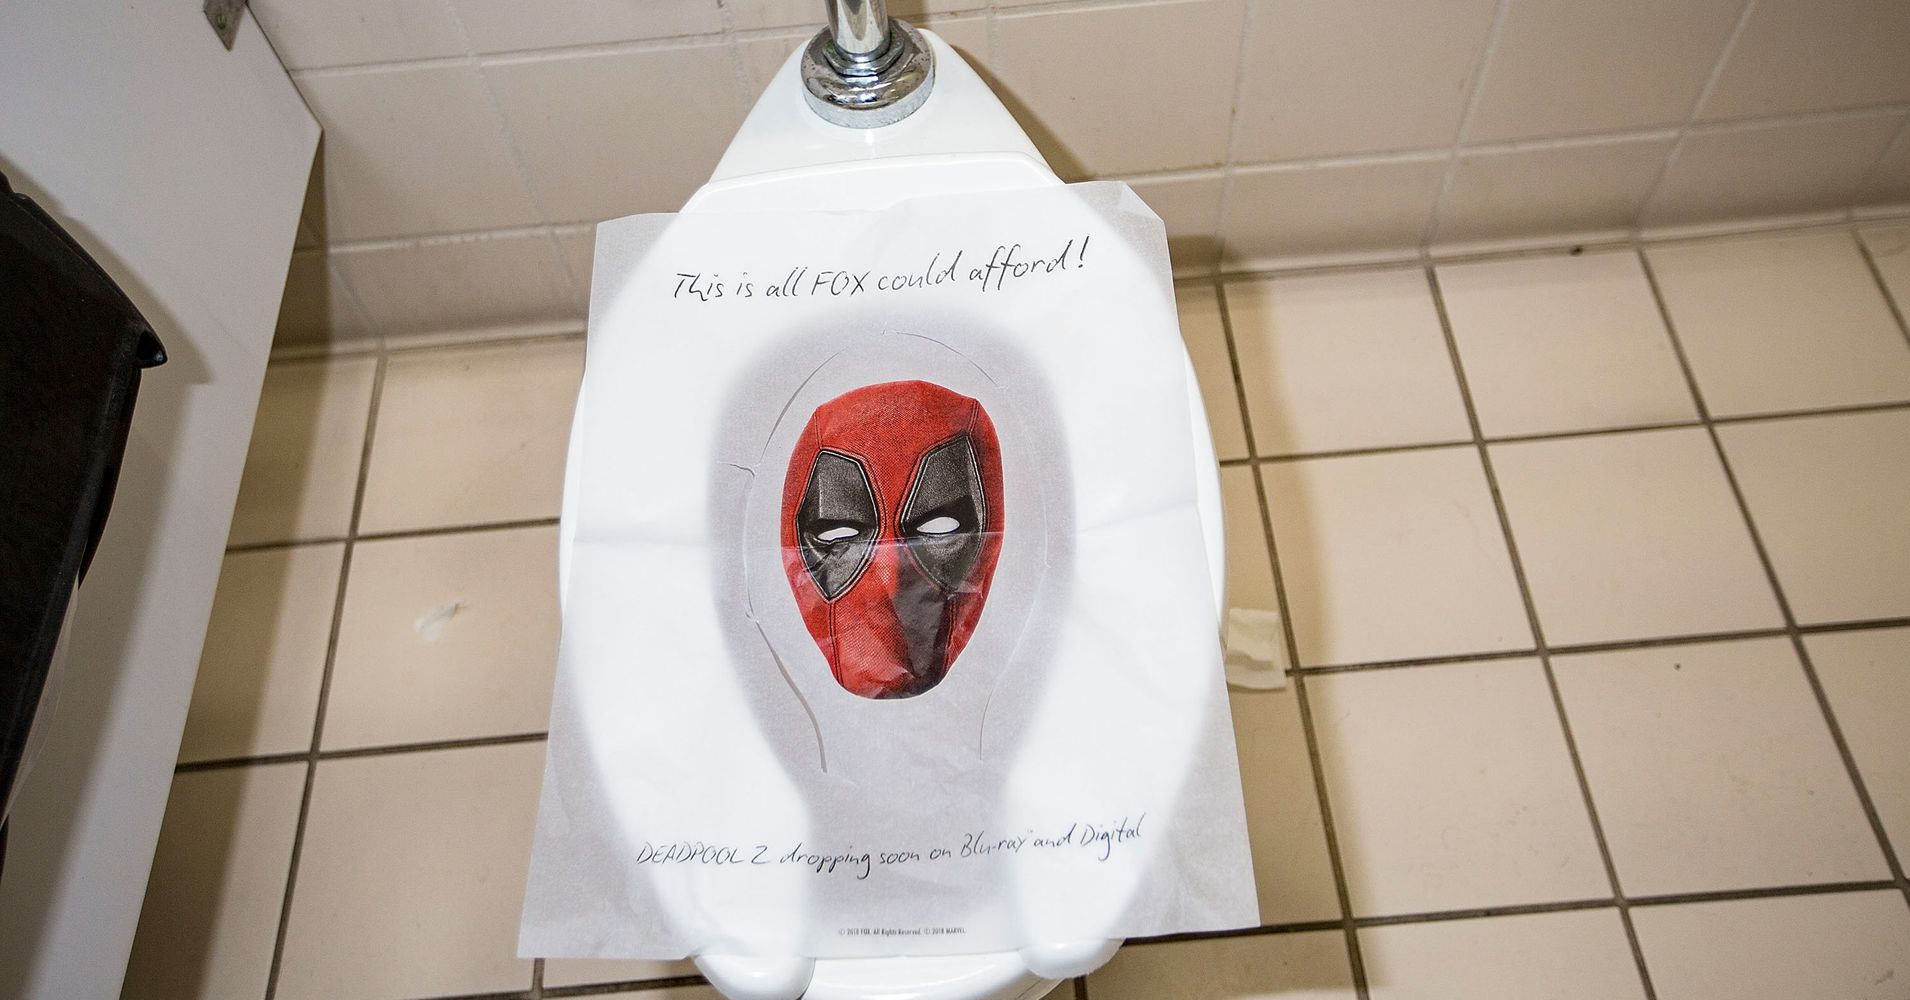 This Deadpool Toilet Seat Cover Is Something We Should All